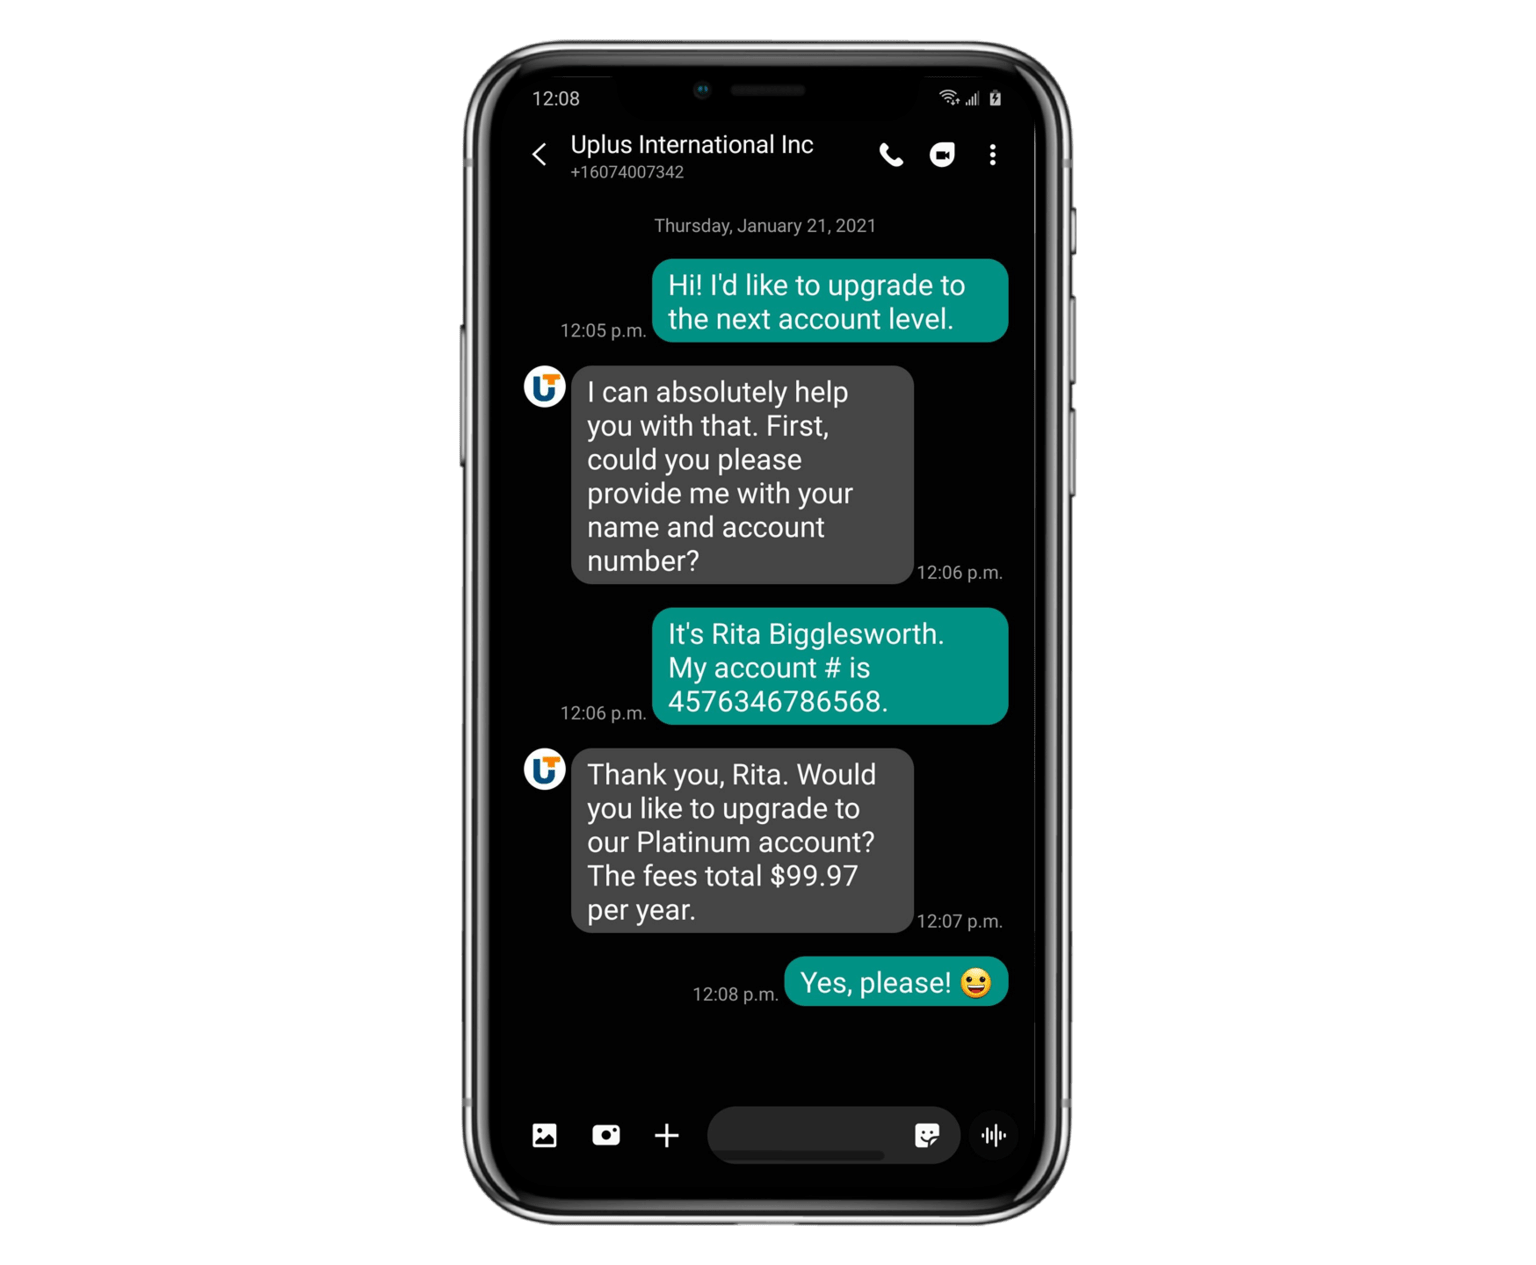 SMS chat screenshot